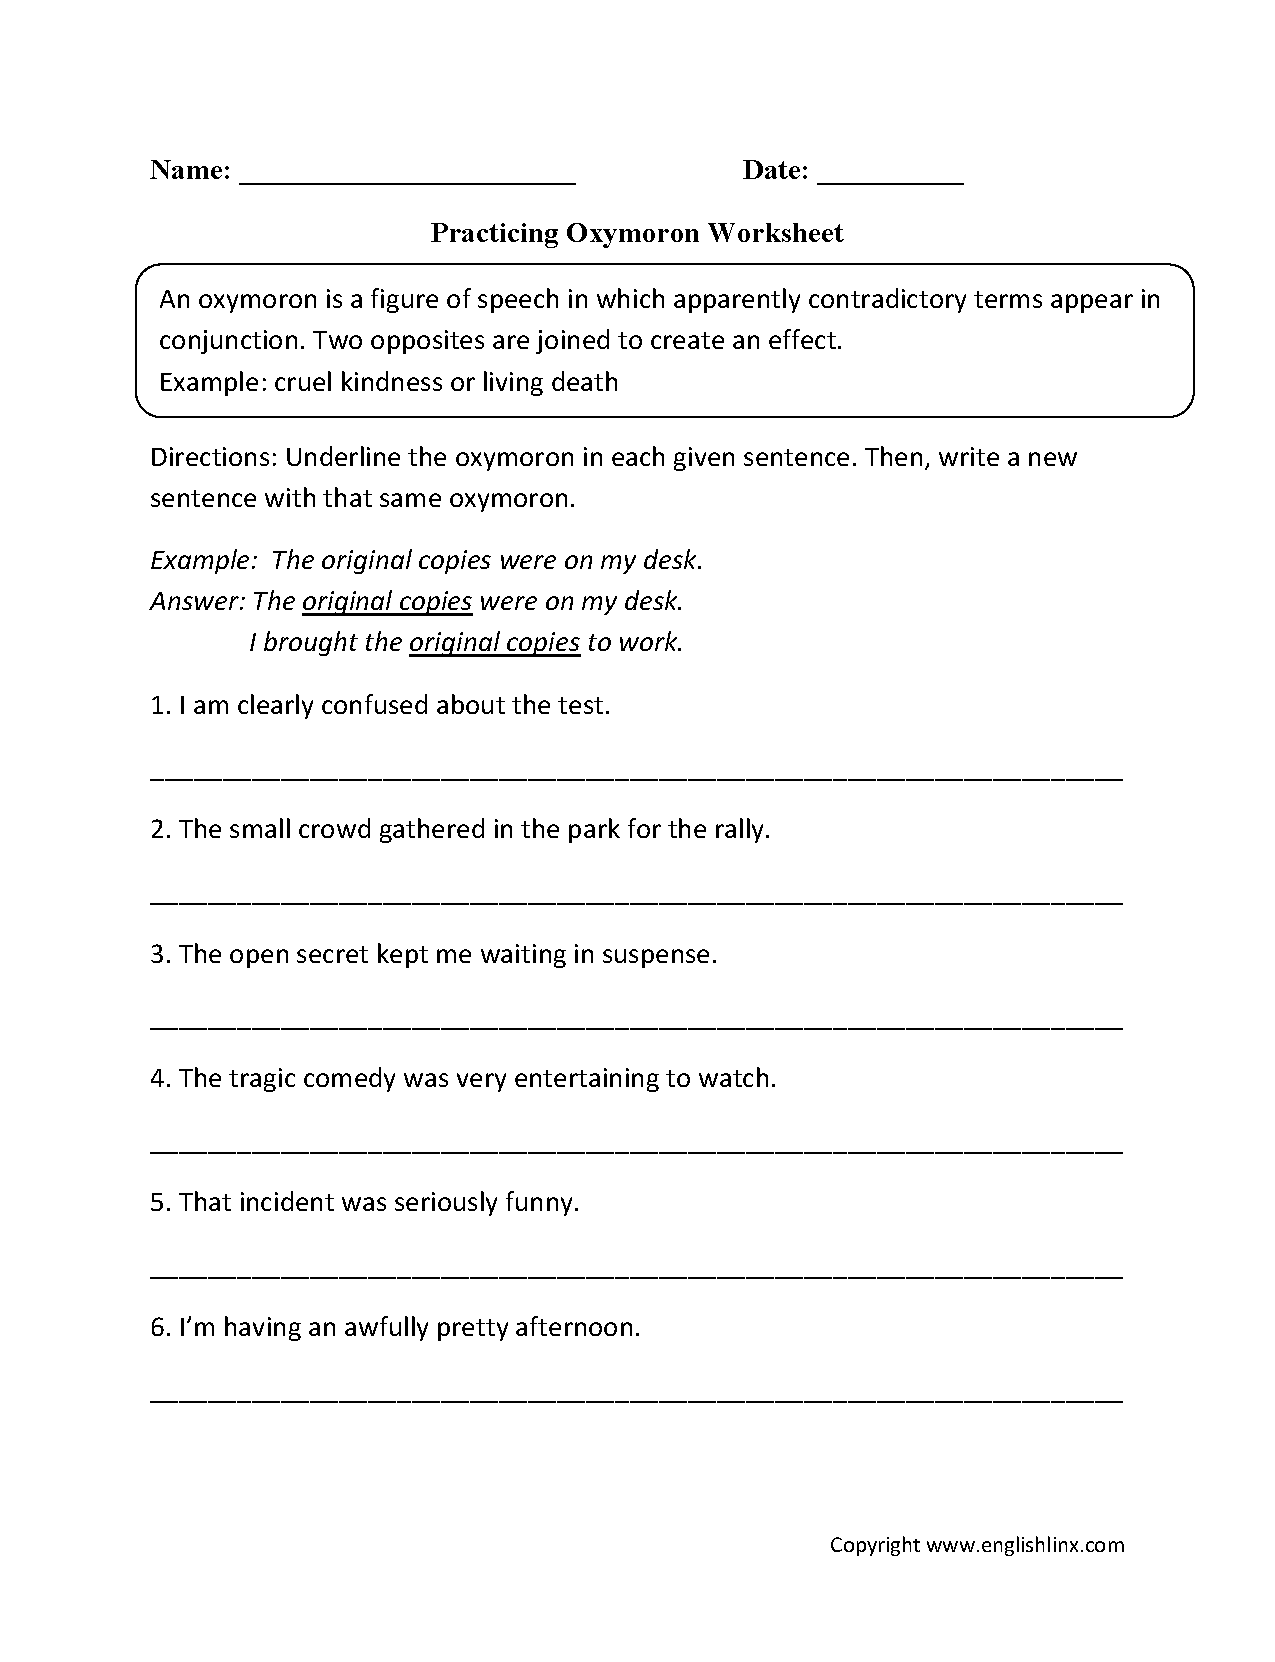 Free Worksheet Figurative Language Worksheets figurative language worksheets oxymoron practicing onomatopoeia worksheet